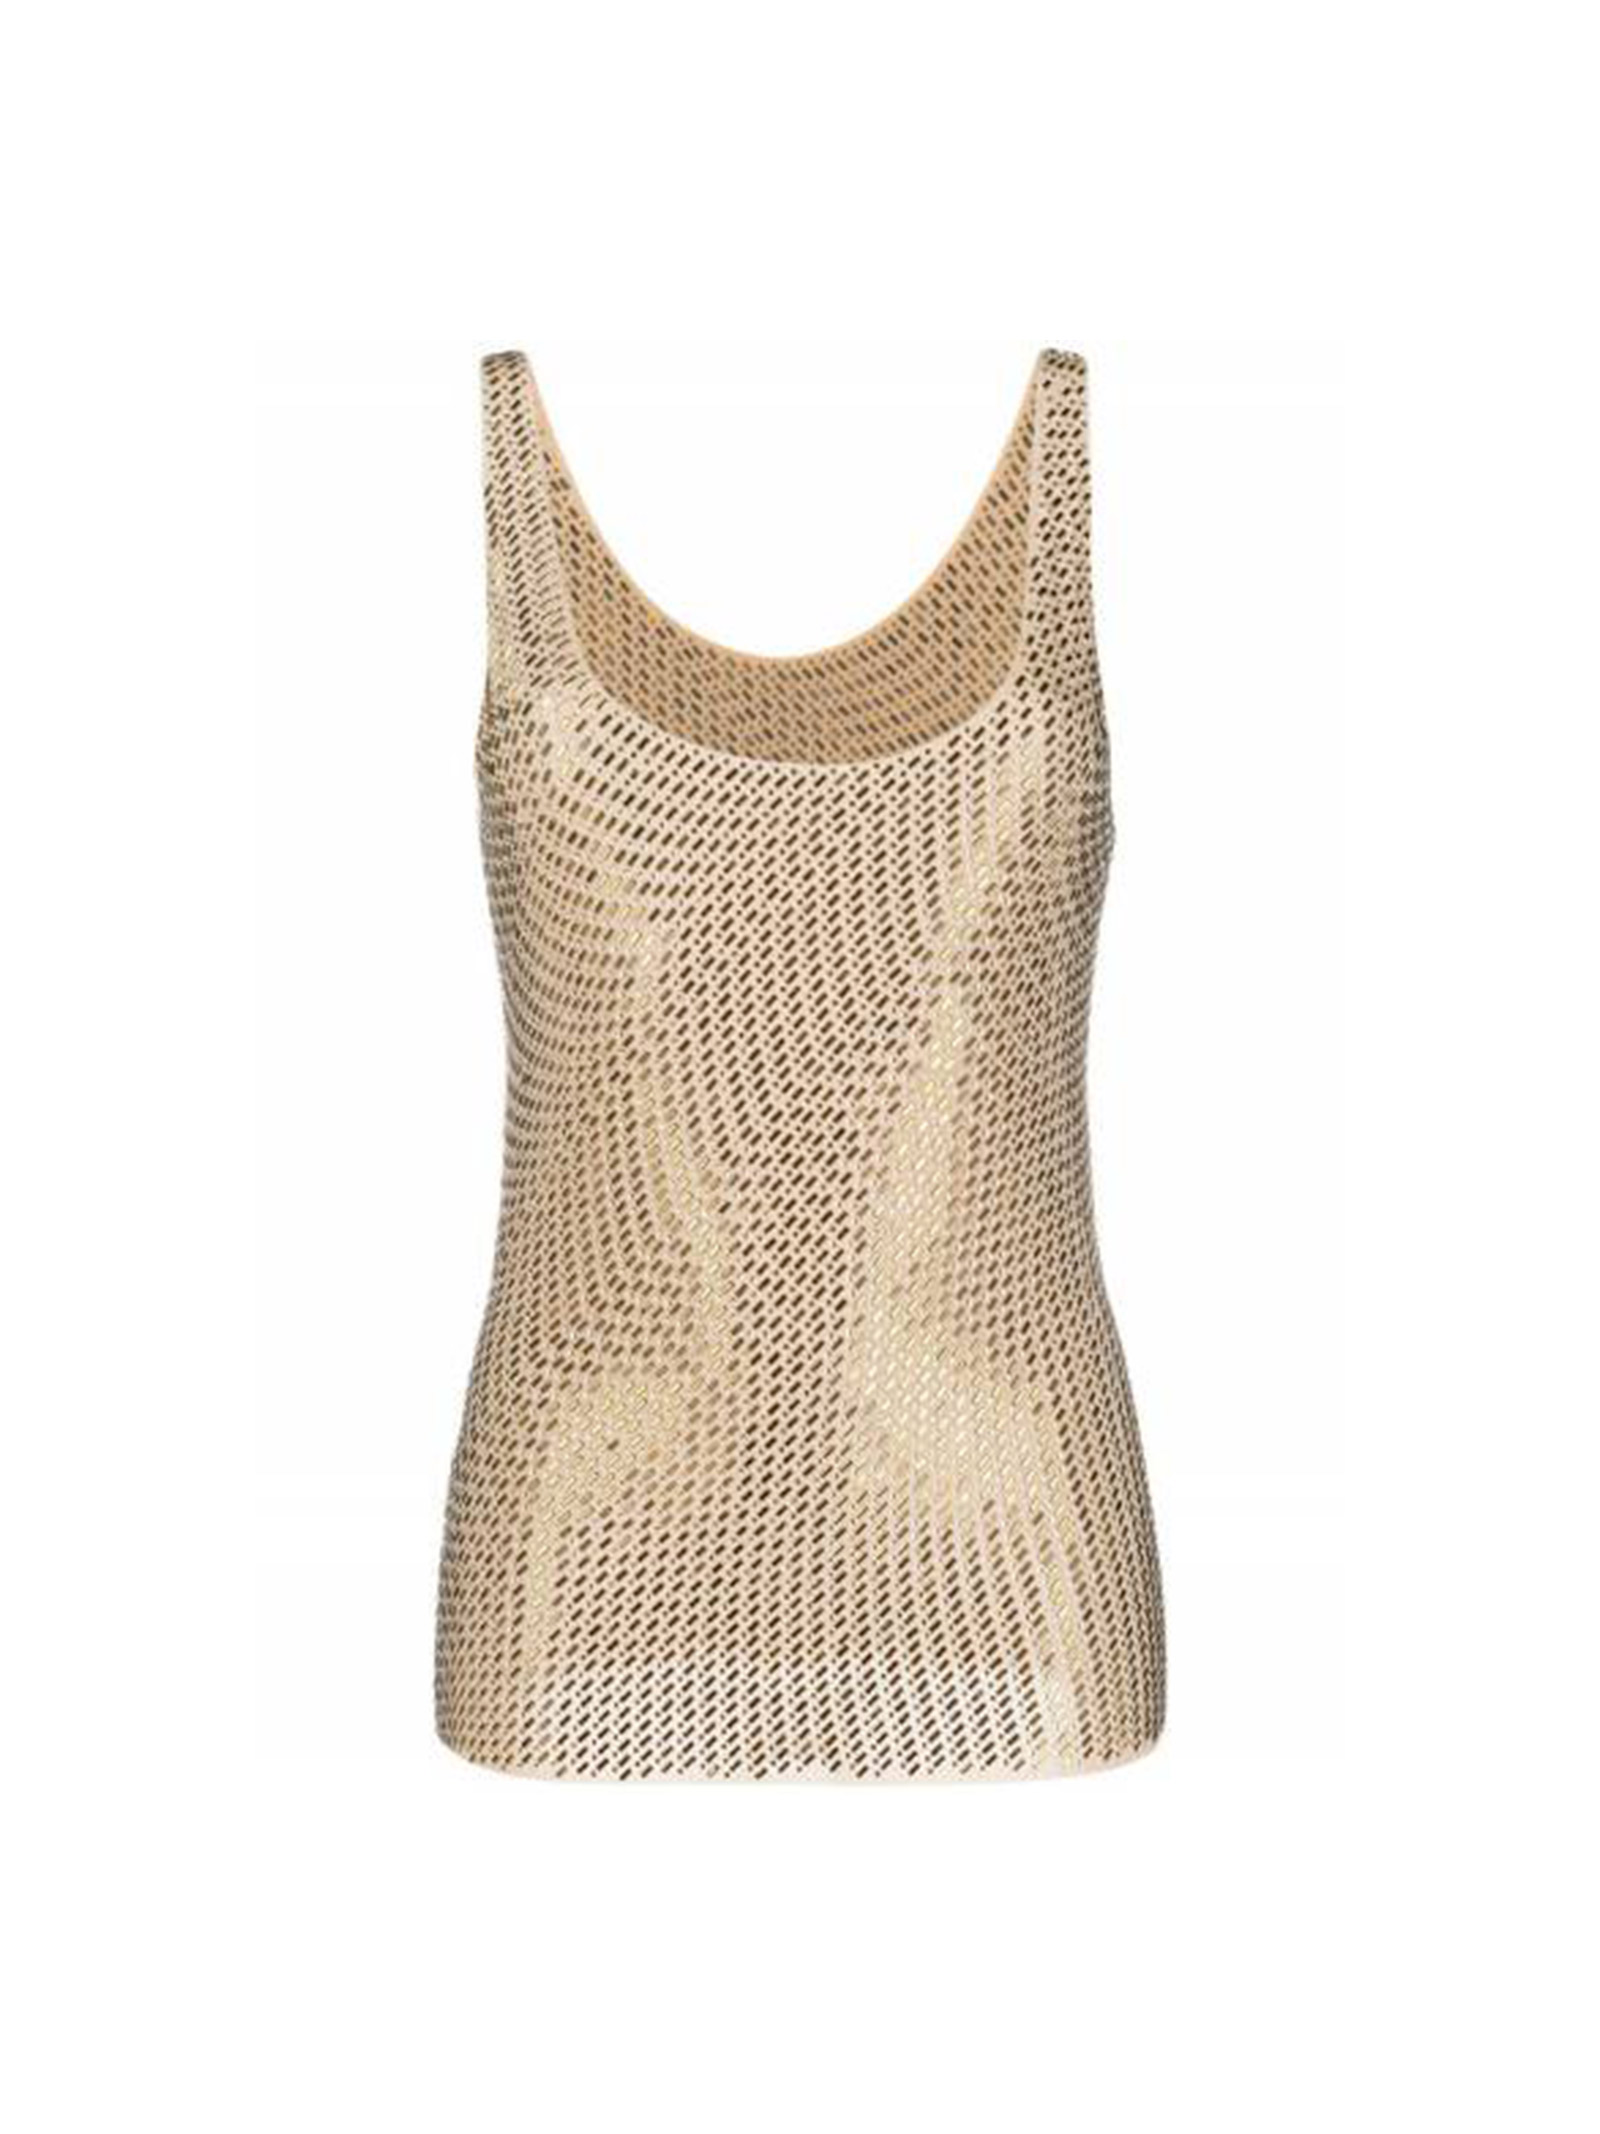 TOP WITH APPLIED RHINESTONES PINKO | Top | 1G15PC-Y673D27